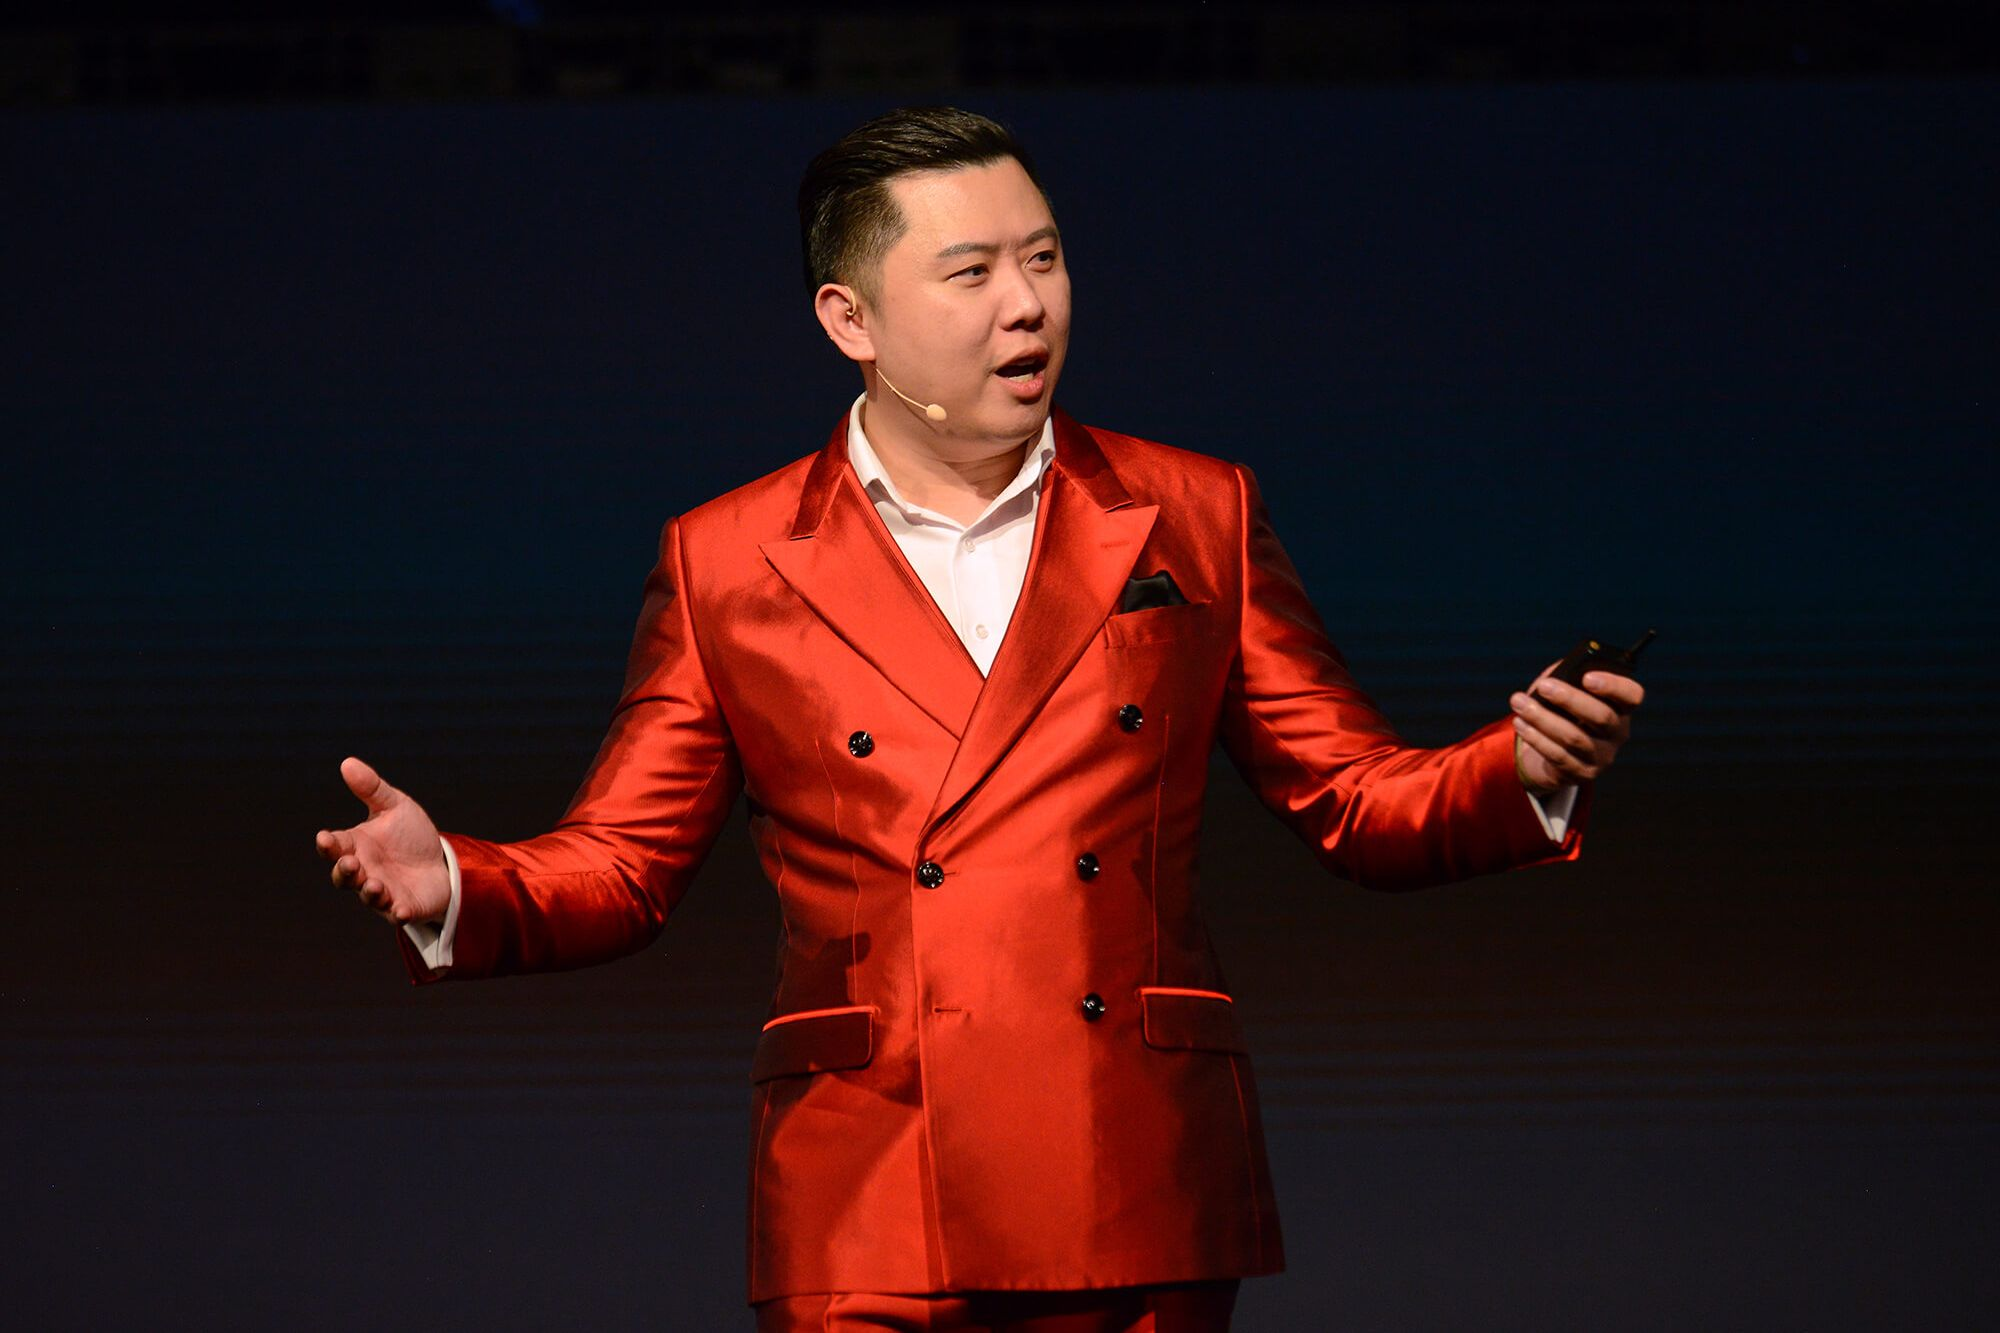 Dan Lok Failed in 13 Business Ventures Over Three Years. Now This 'Unemployable' Immigrant Manages Millions and Mentors Young Entrepreneurs.